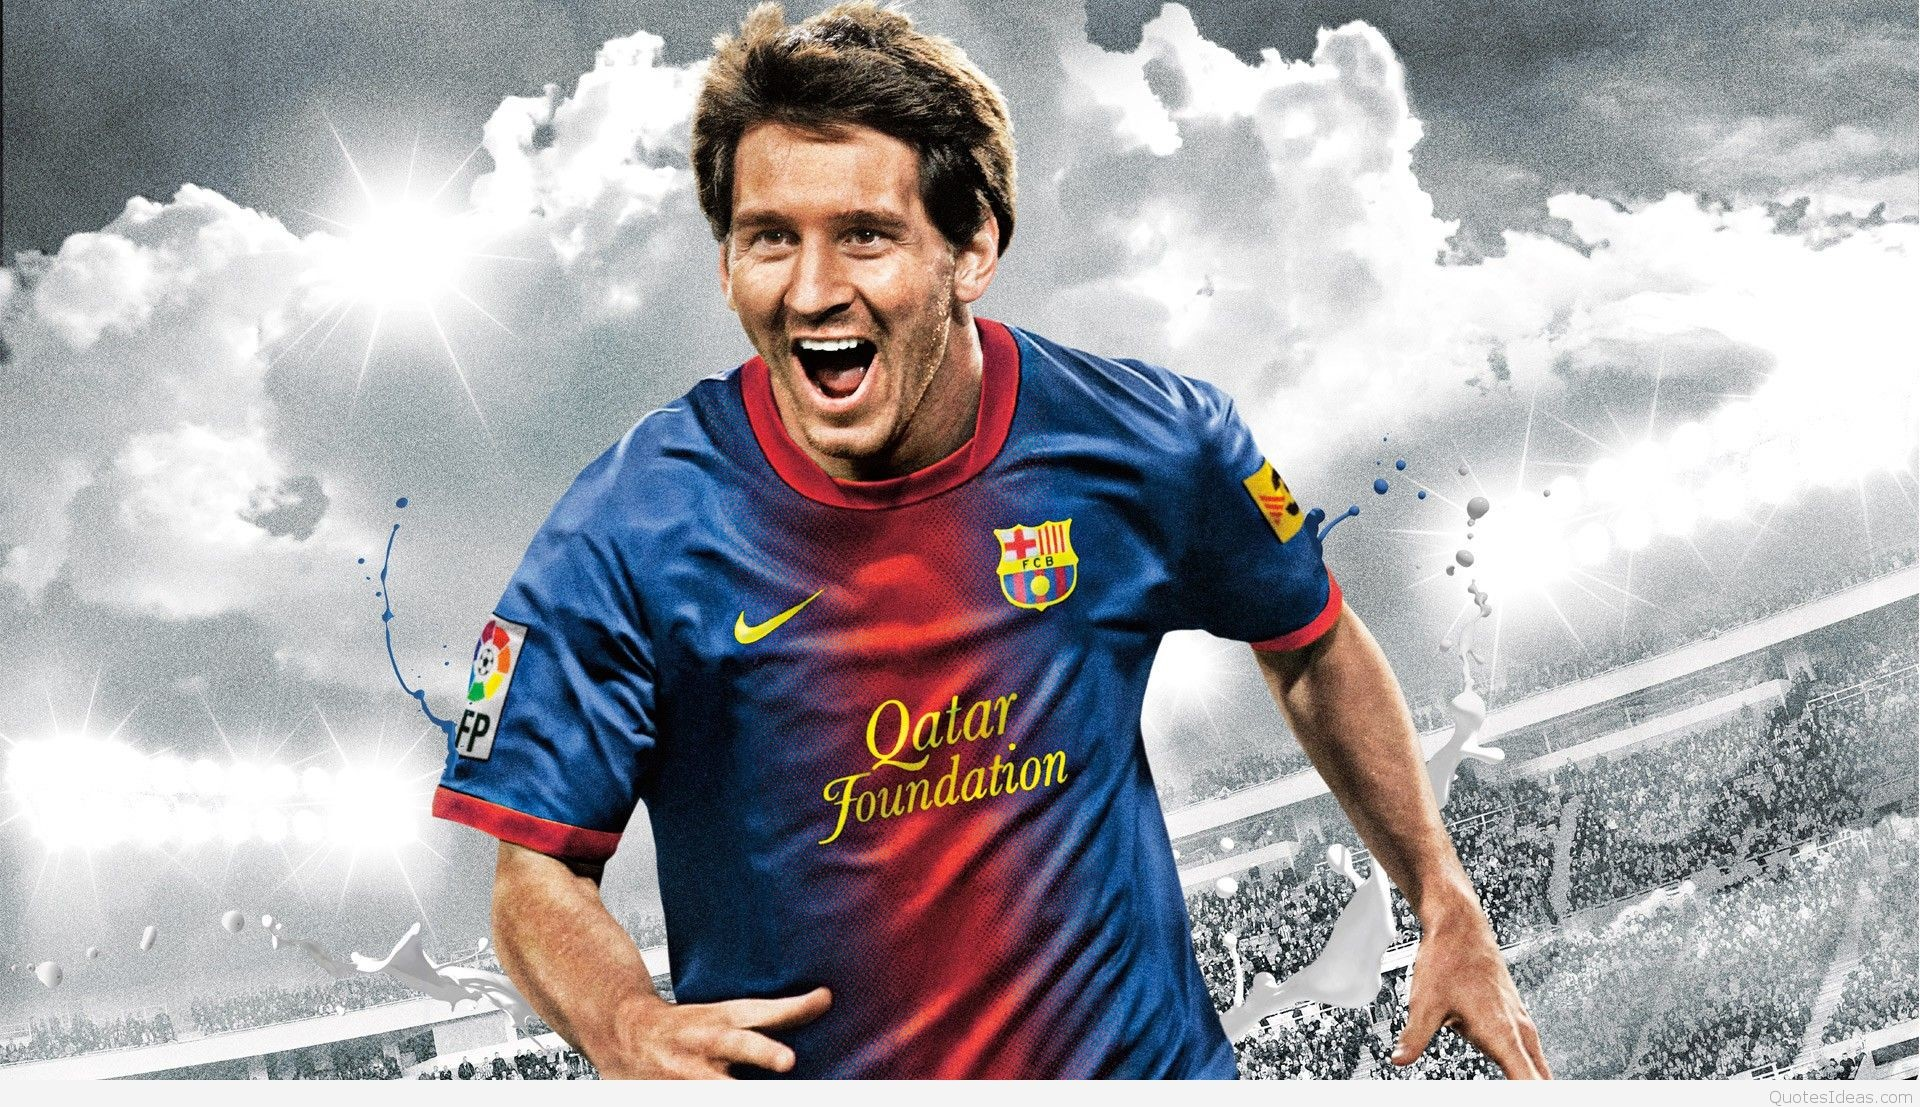 1920x1107 Wallpapers Soccer Cool Messi Wallpapers: Players, Teams, Leagues